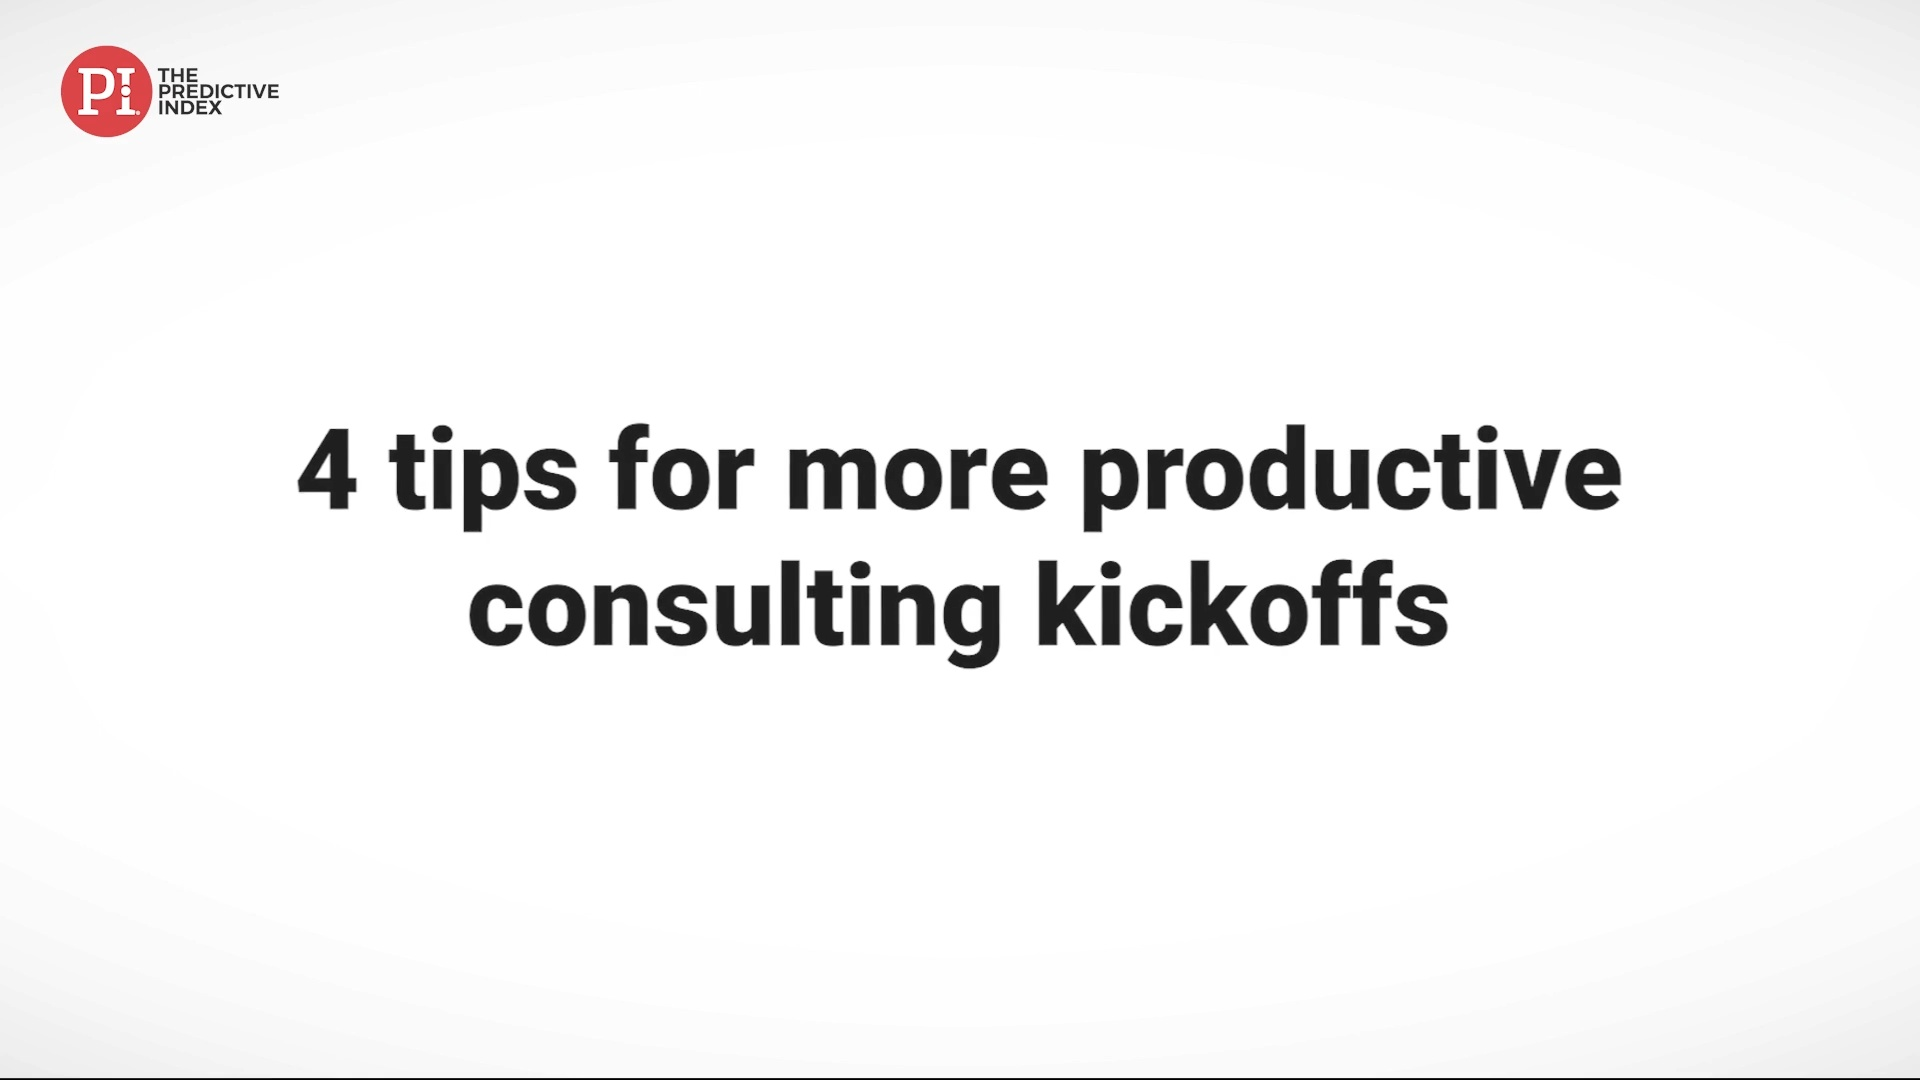 4 tips for more productive consulting kickoffs